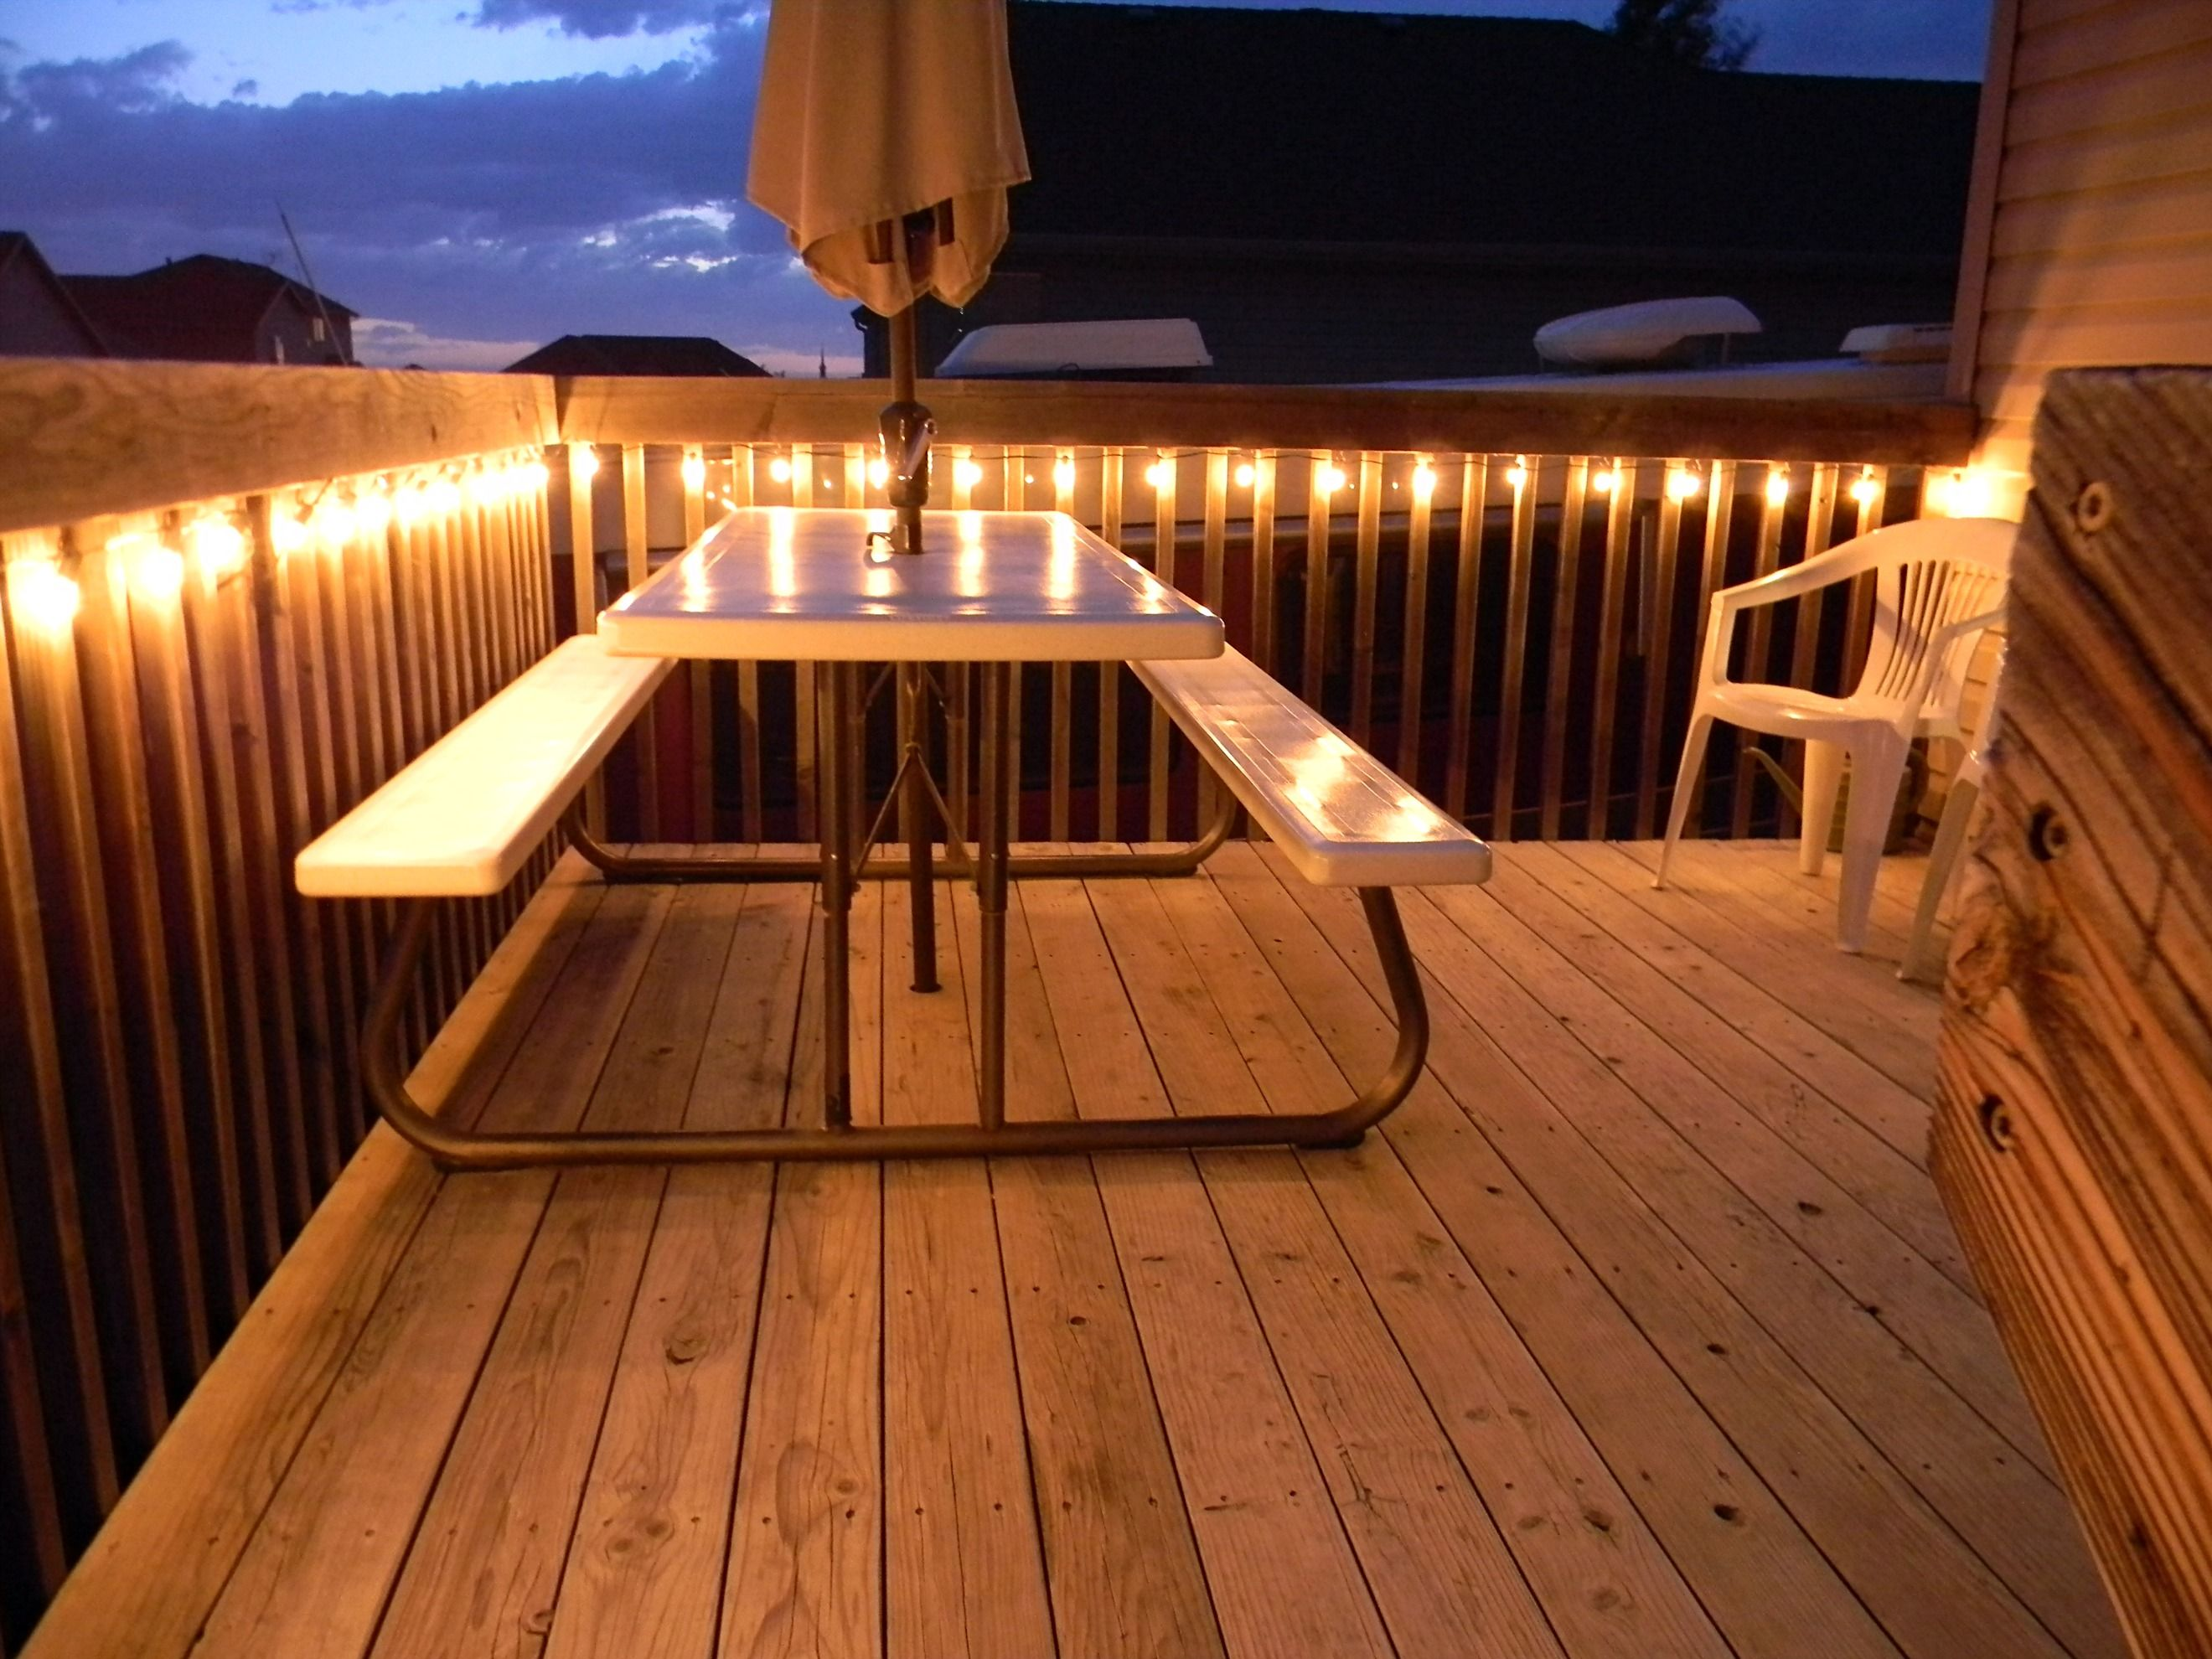 Diy Decking Ideas For Before Next Spring Season | Home ...